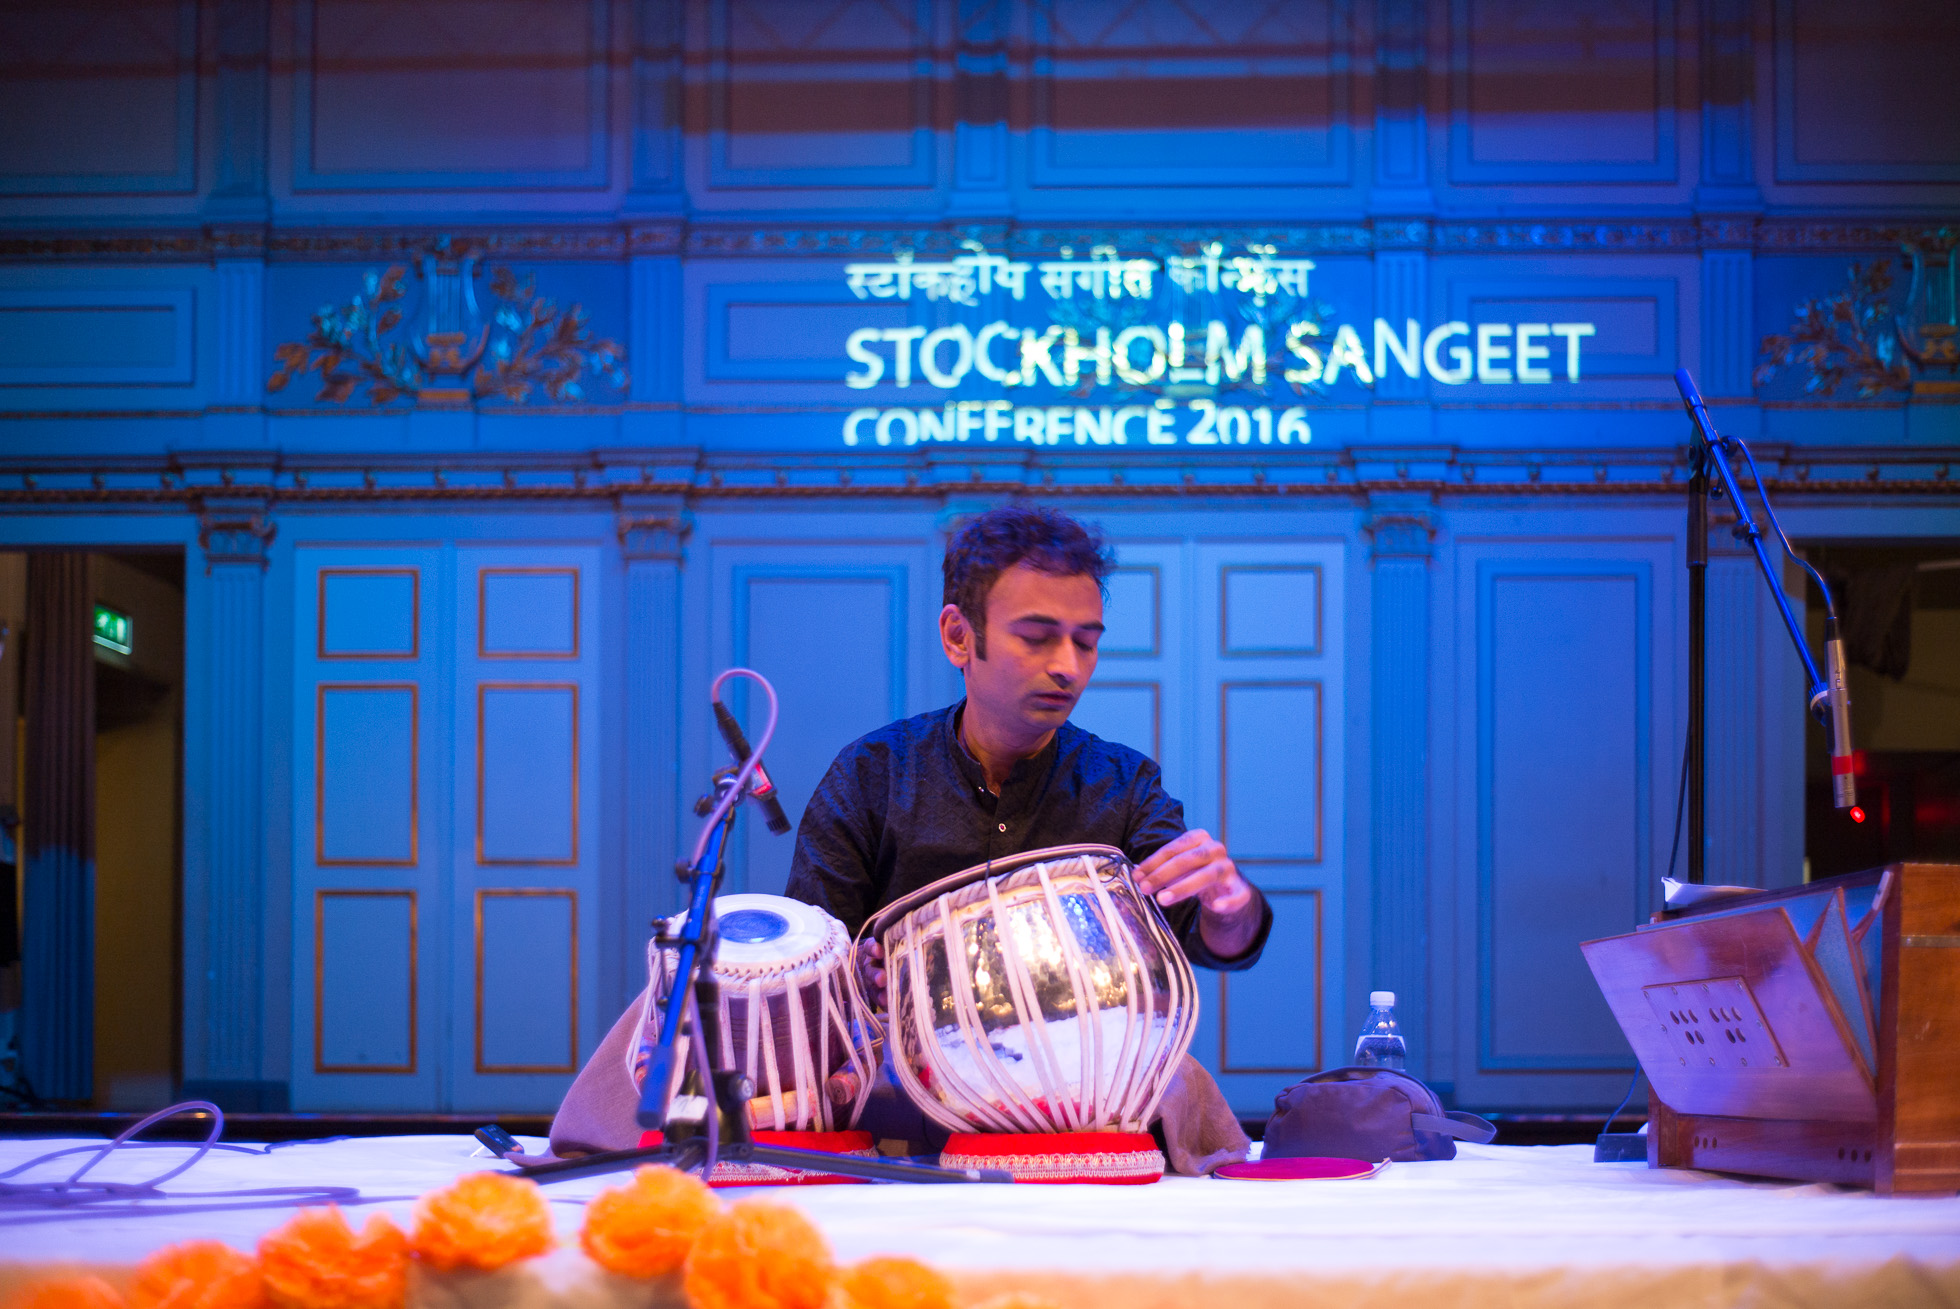 2016-10-16-stockholm-sangeet-conference-2016_2016-10-16_max-dahlstrand_0333